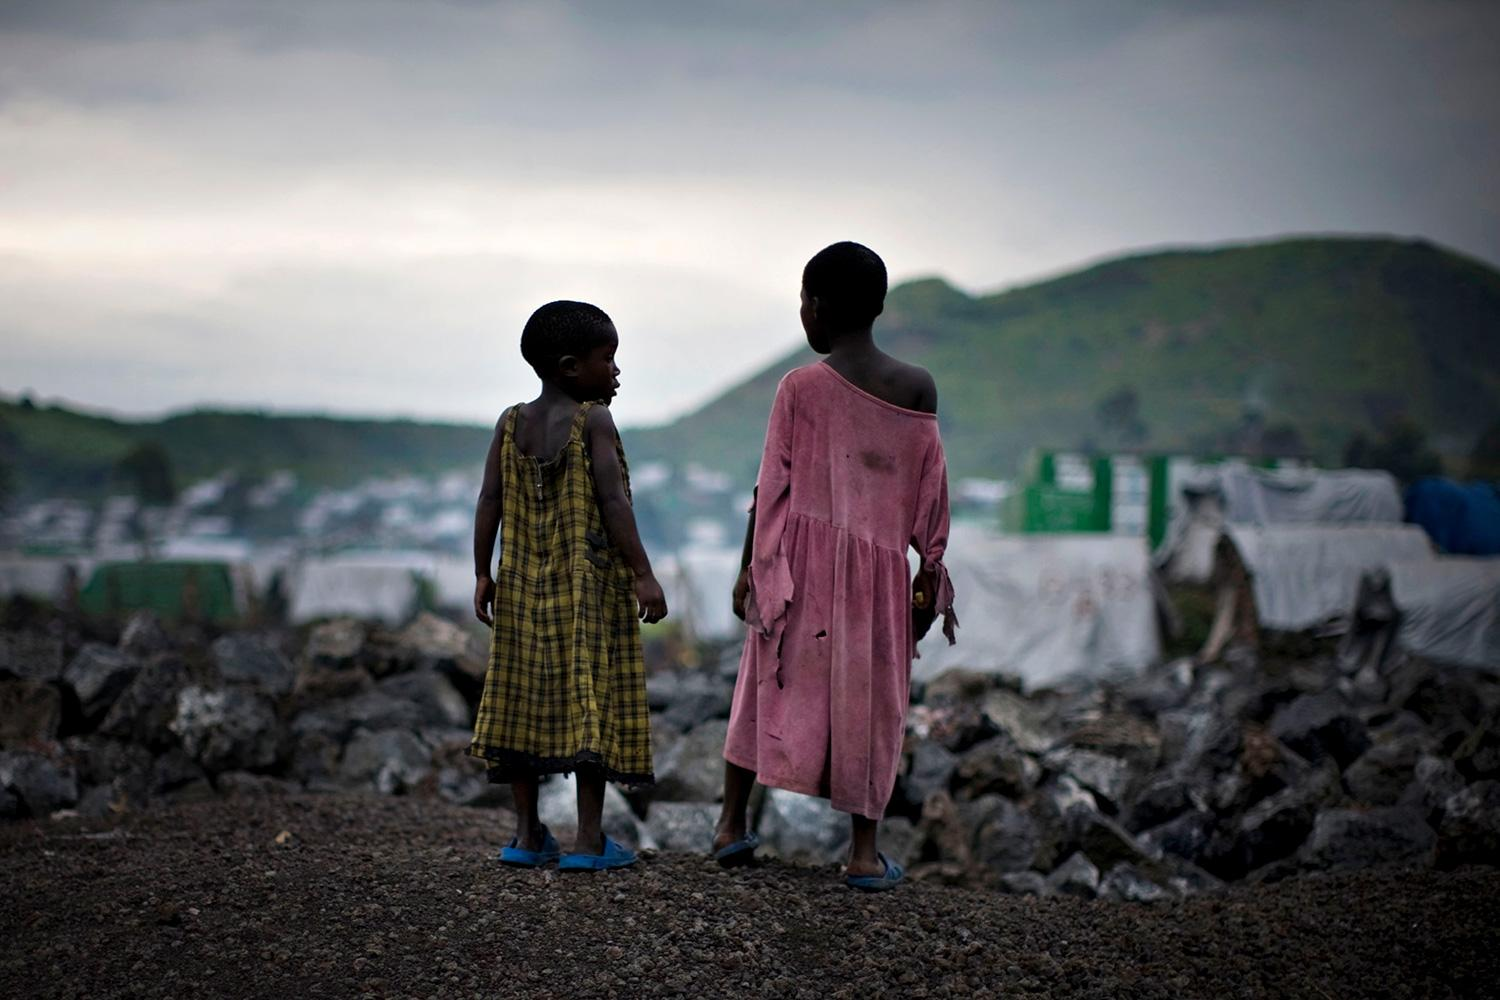 Congolese girls displaced by war stand on the outskirts of a makeshift camp near Goma in eastern Democratic Republic of Congo on February 11, 2009. The photo shows two girls standing on a hill overlooking a camp filled with white tents at sunset. REUTERS/Finbarr O'Reilly